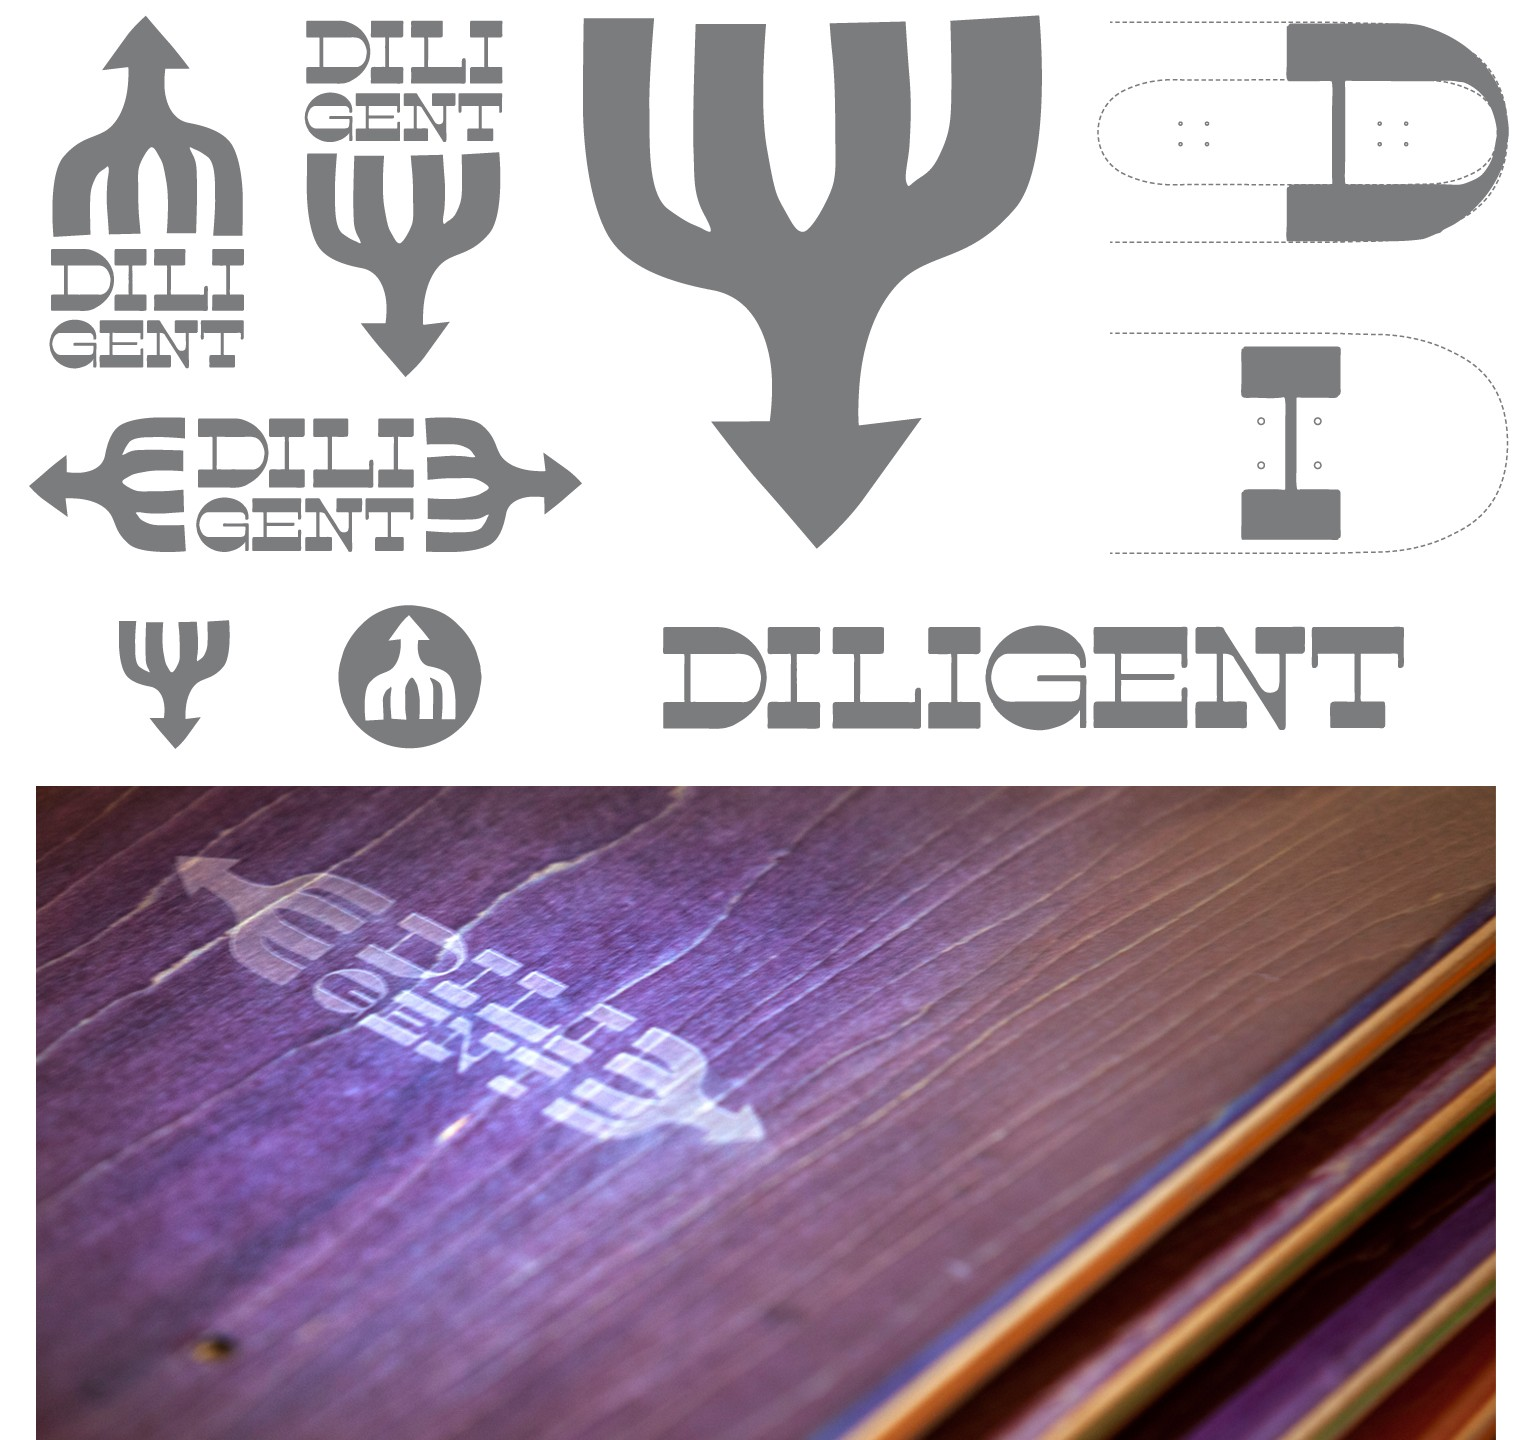 Diligent skateboards